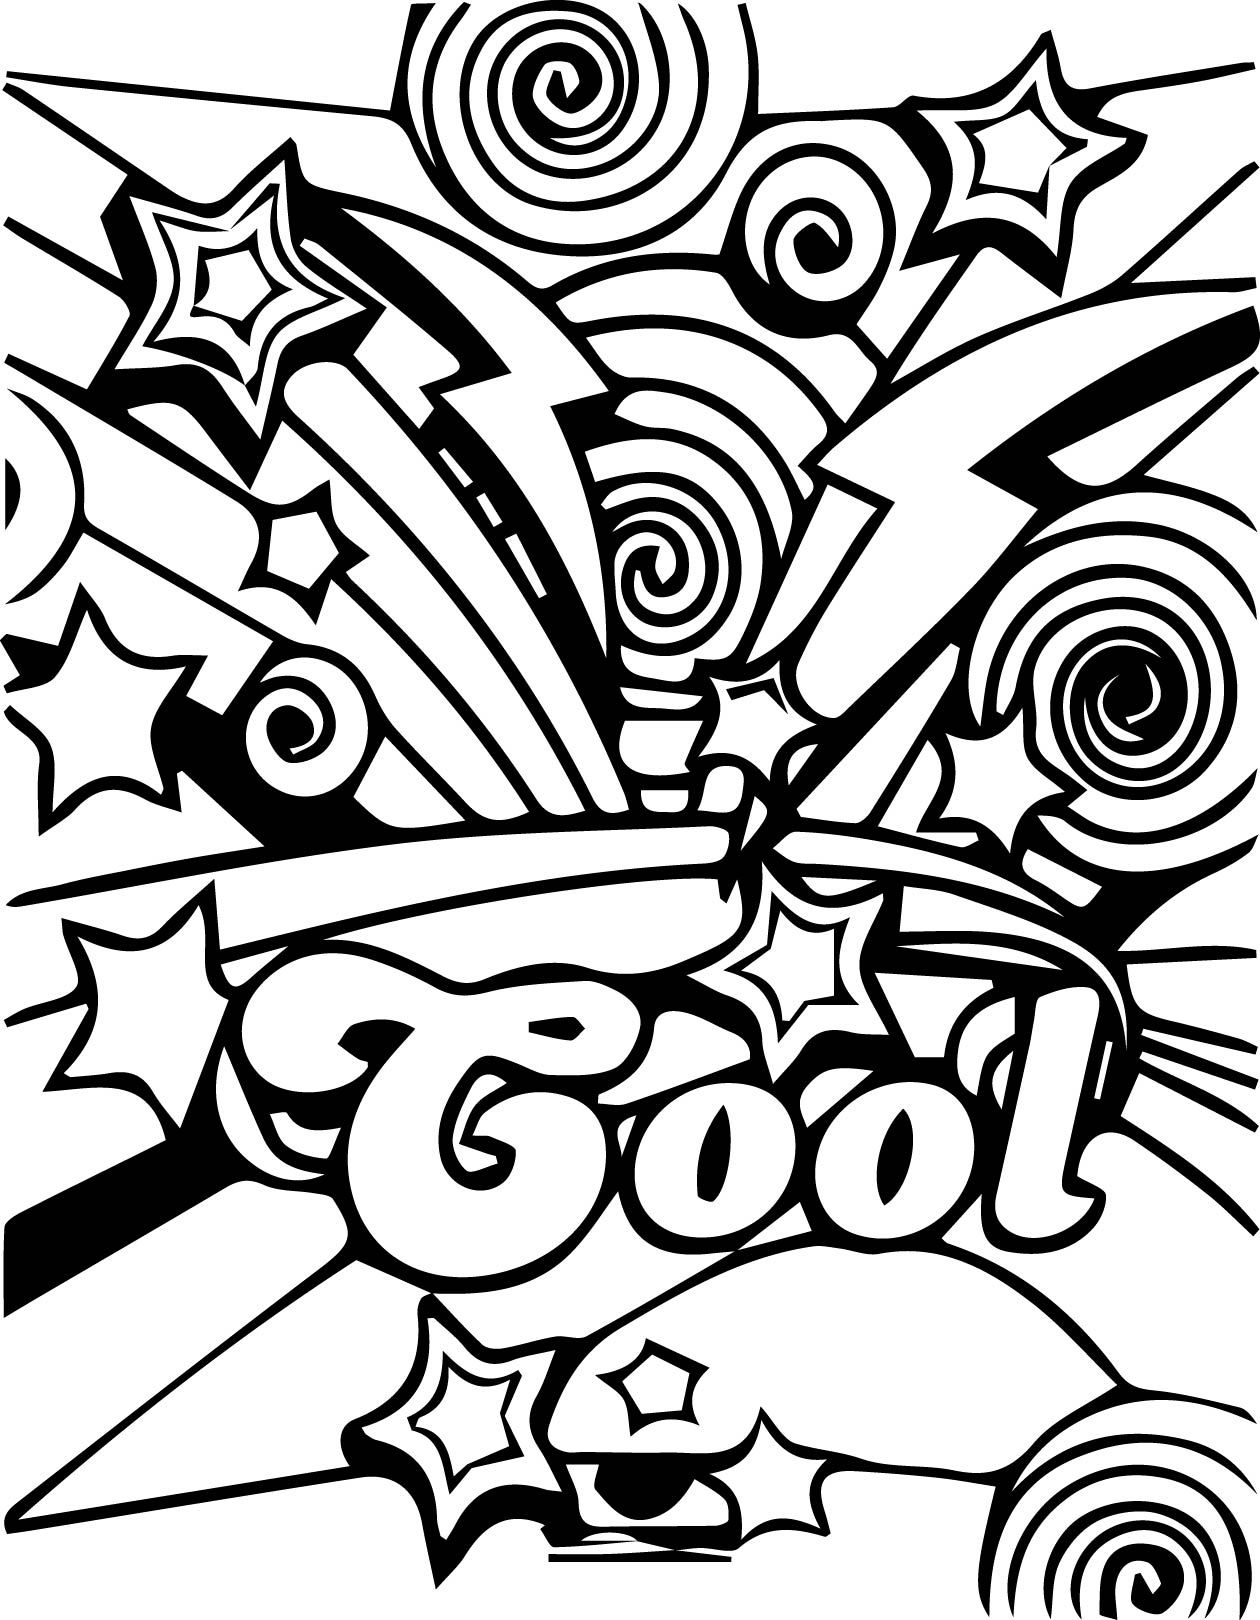 Cool Coloring Page Printable Cool Coloring Pages Coloring Pages Heart Coloring Pages [ 1620 x 1260 Pixel ]